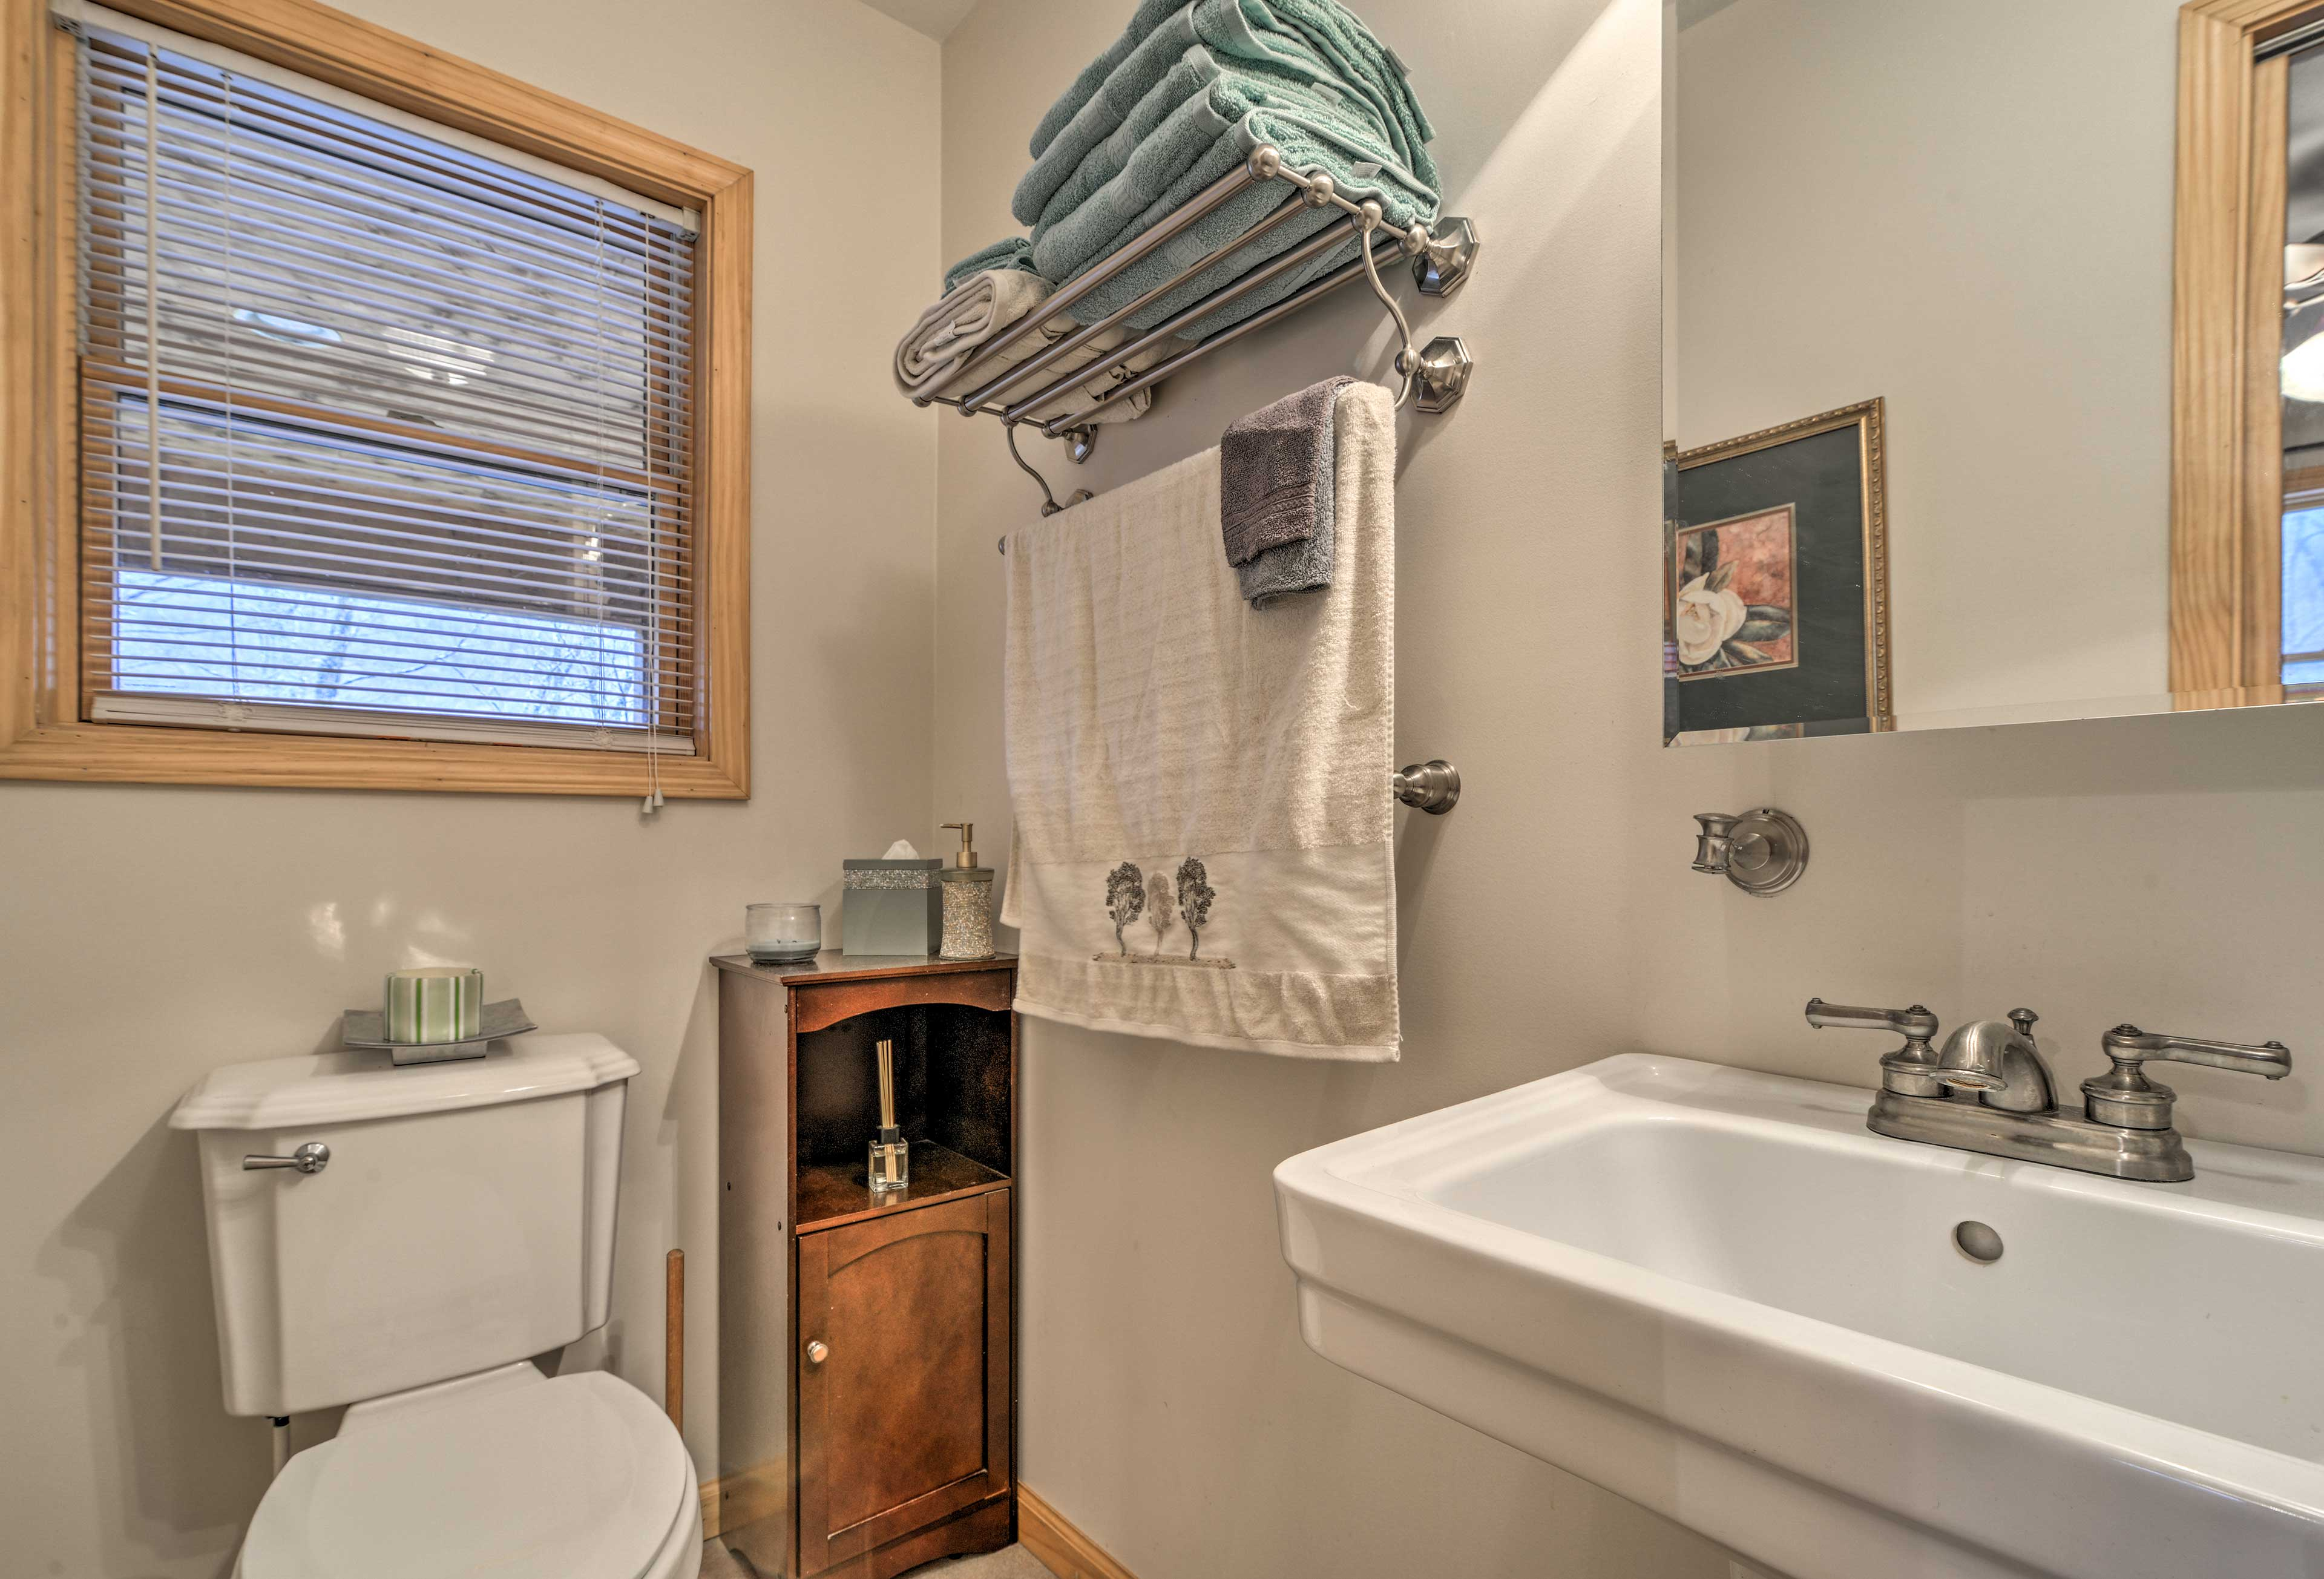 The cabin features 2 full baths.